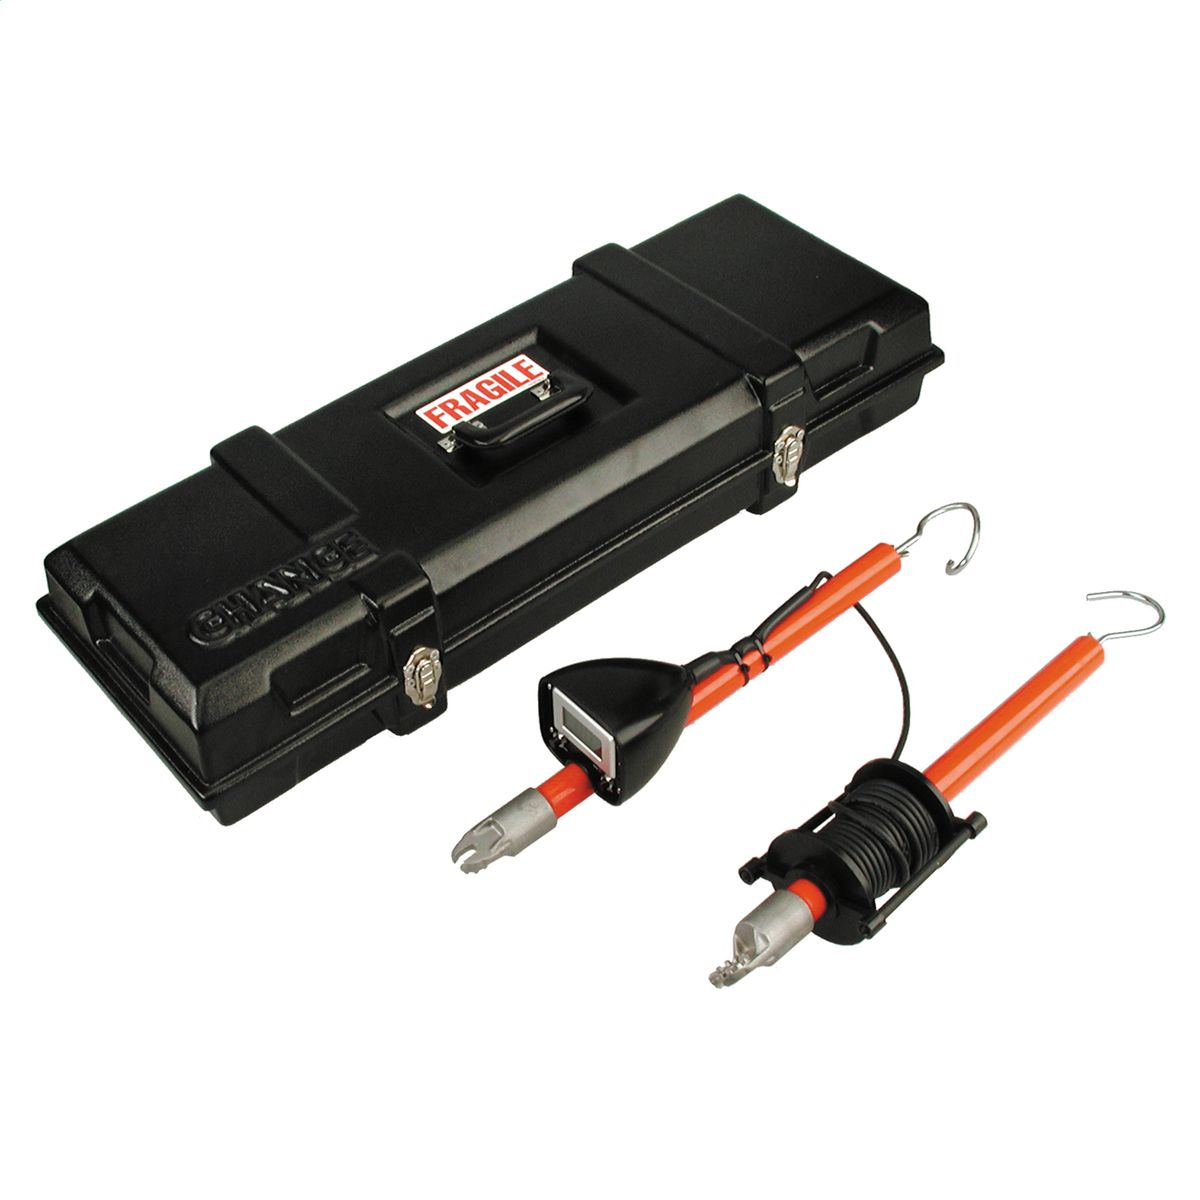 Chance High Voltage Tester : Digital phasing tester kv brand hubbell power systems